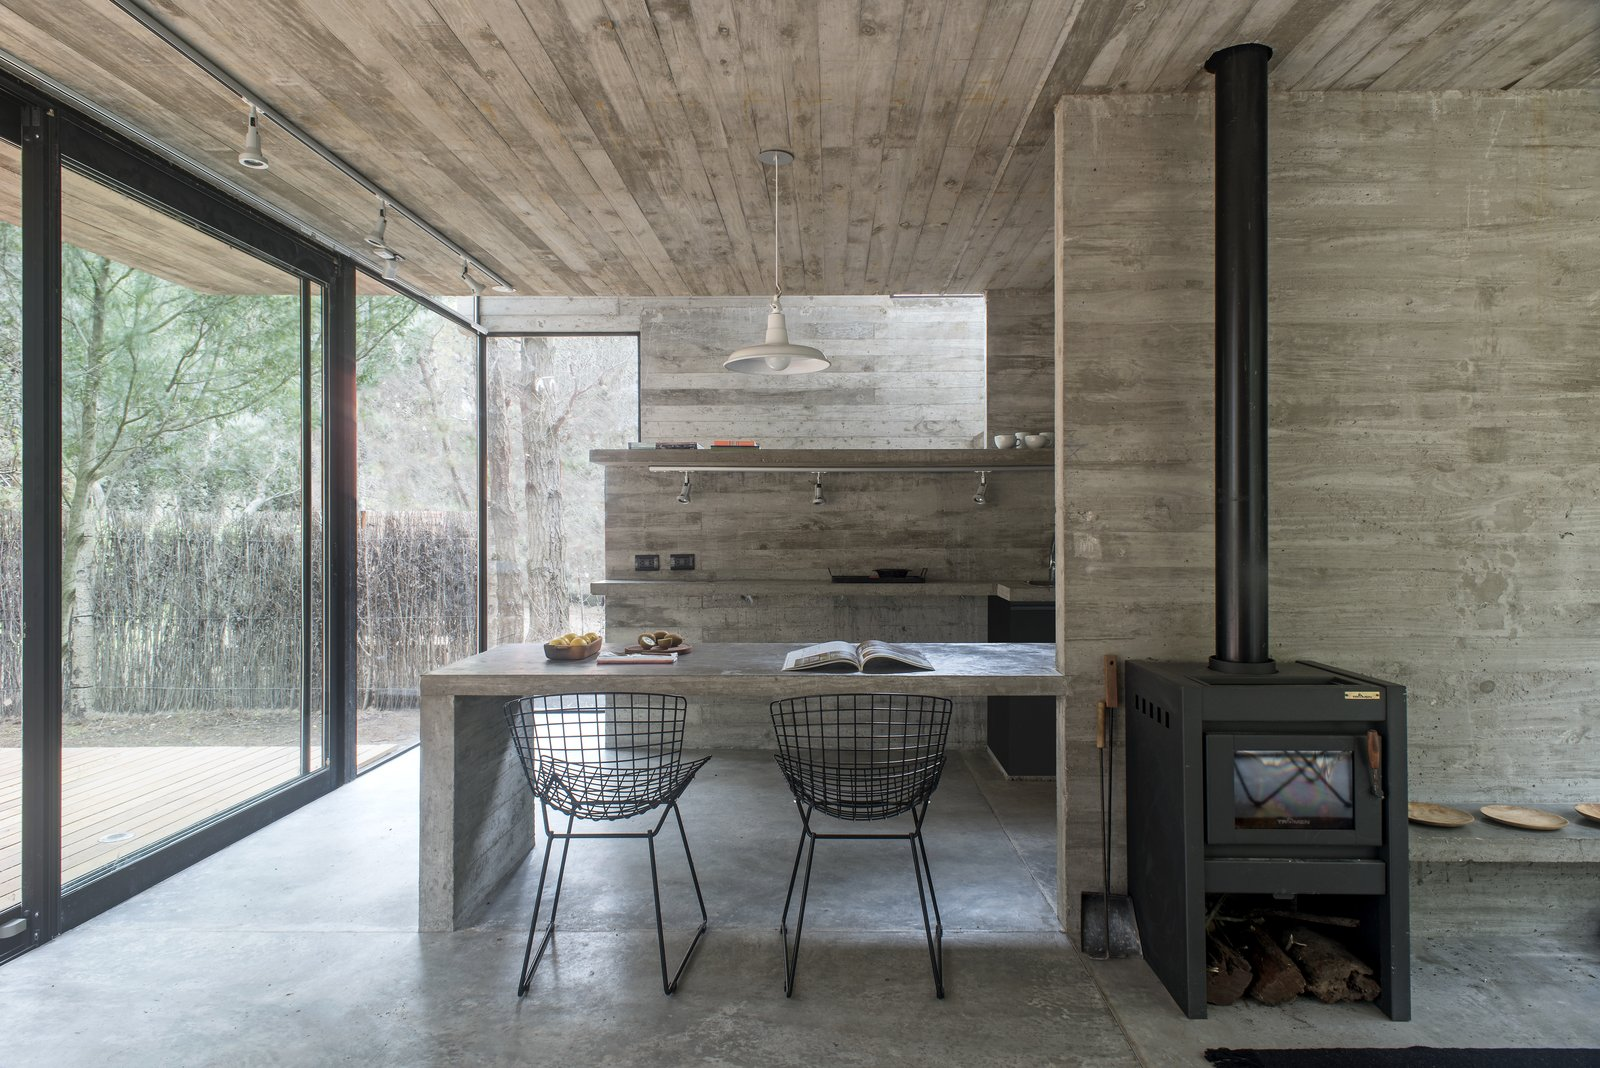 Concrete Rooms Photo 6 Of 10 In A Concrete Vacation House Keeps Life Simple In